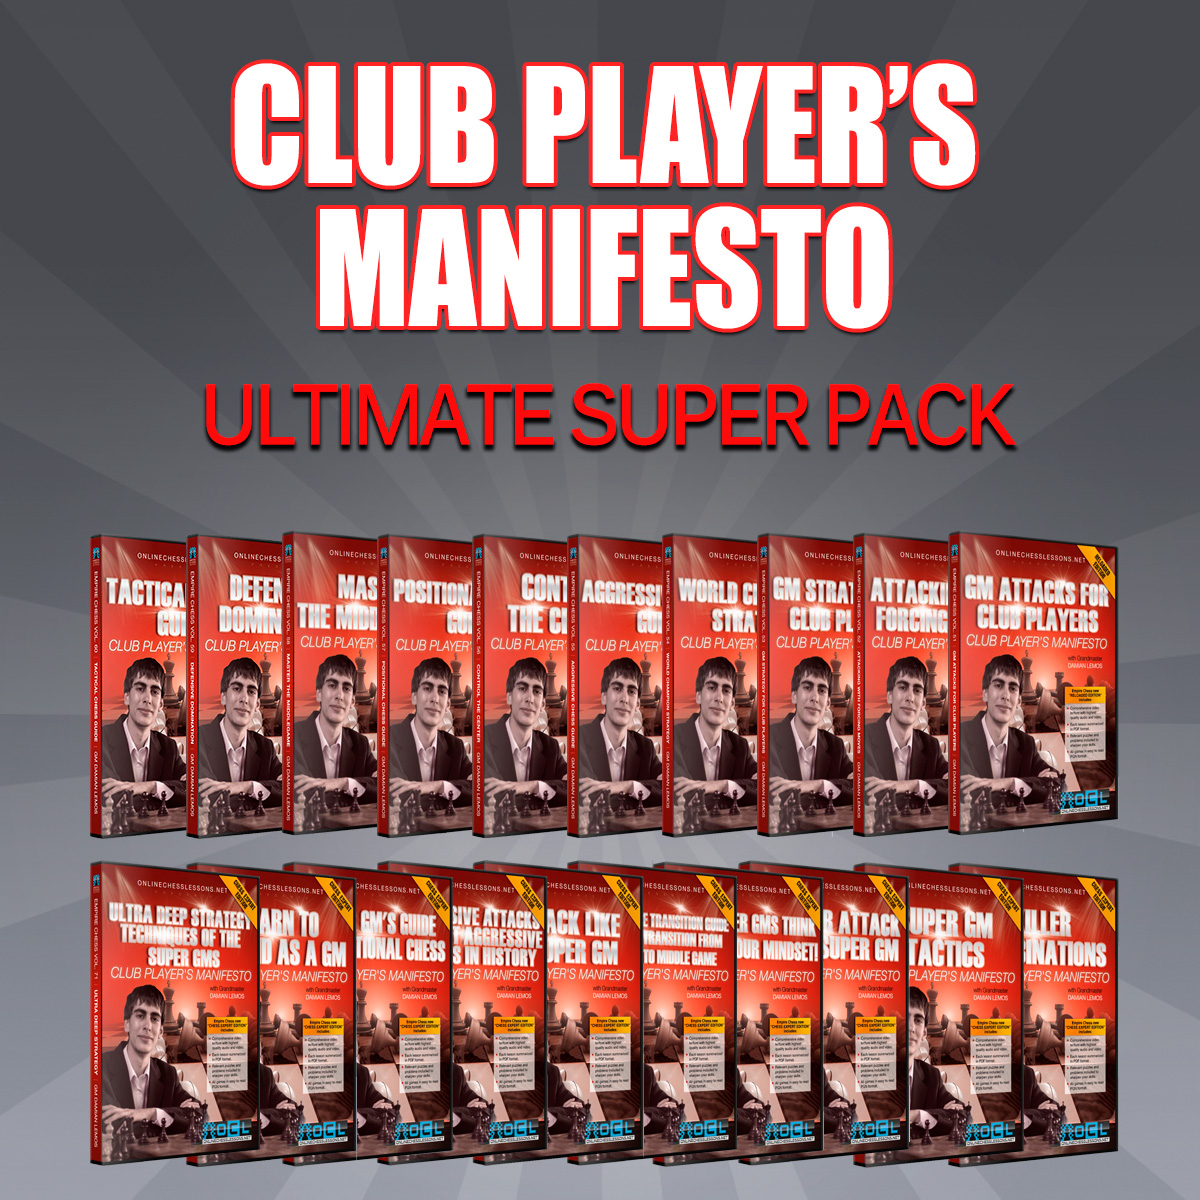 Empire Chess Club Player's Manifesto - Ultimate Super Pack